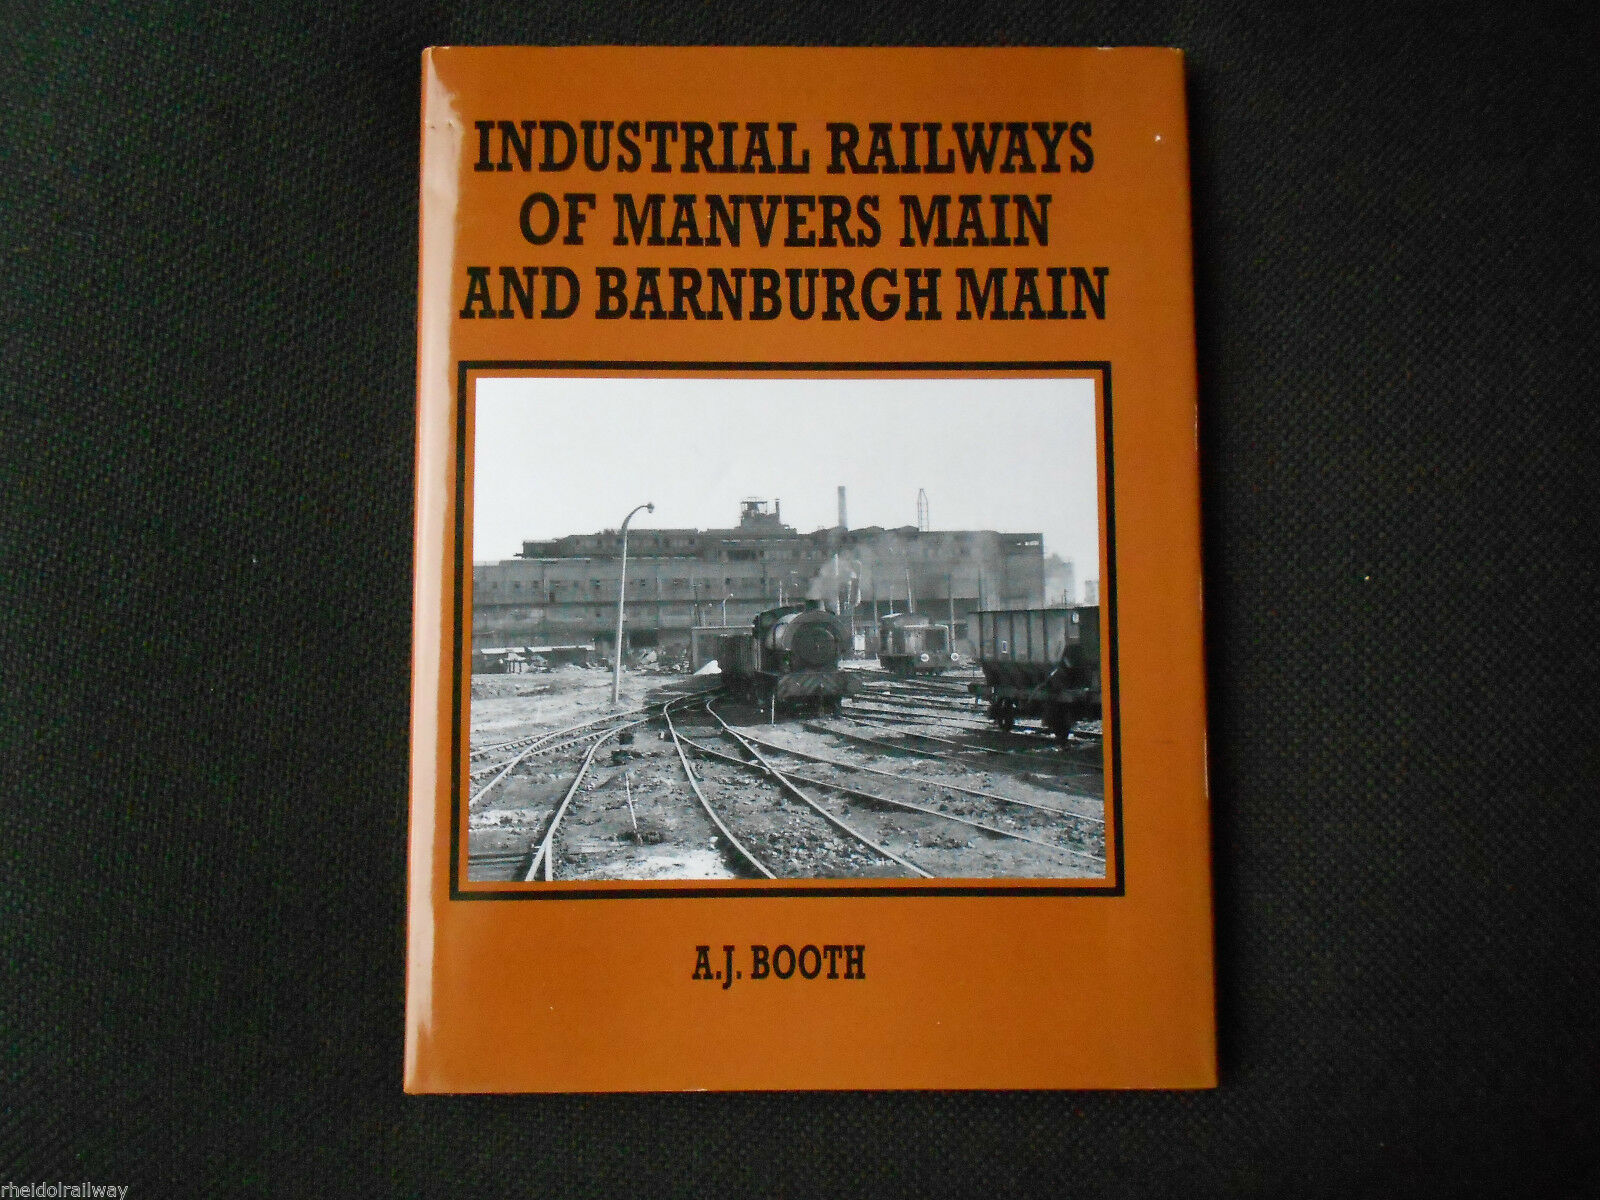 Manvers Main and Barnburgh Main Industrial Railways  by Adrian Booth...